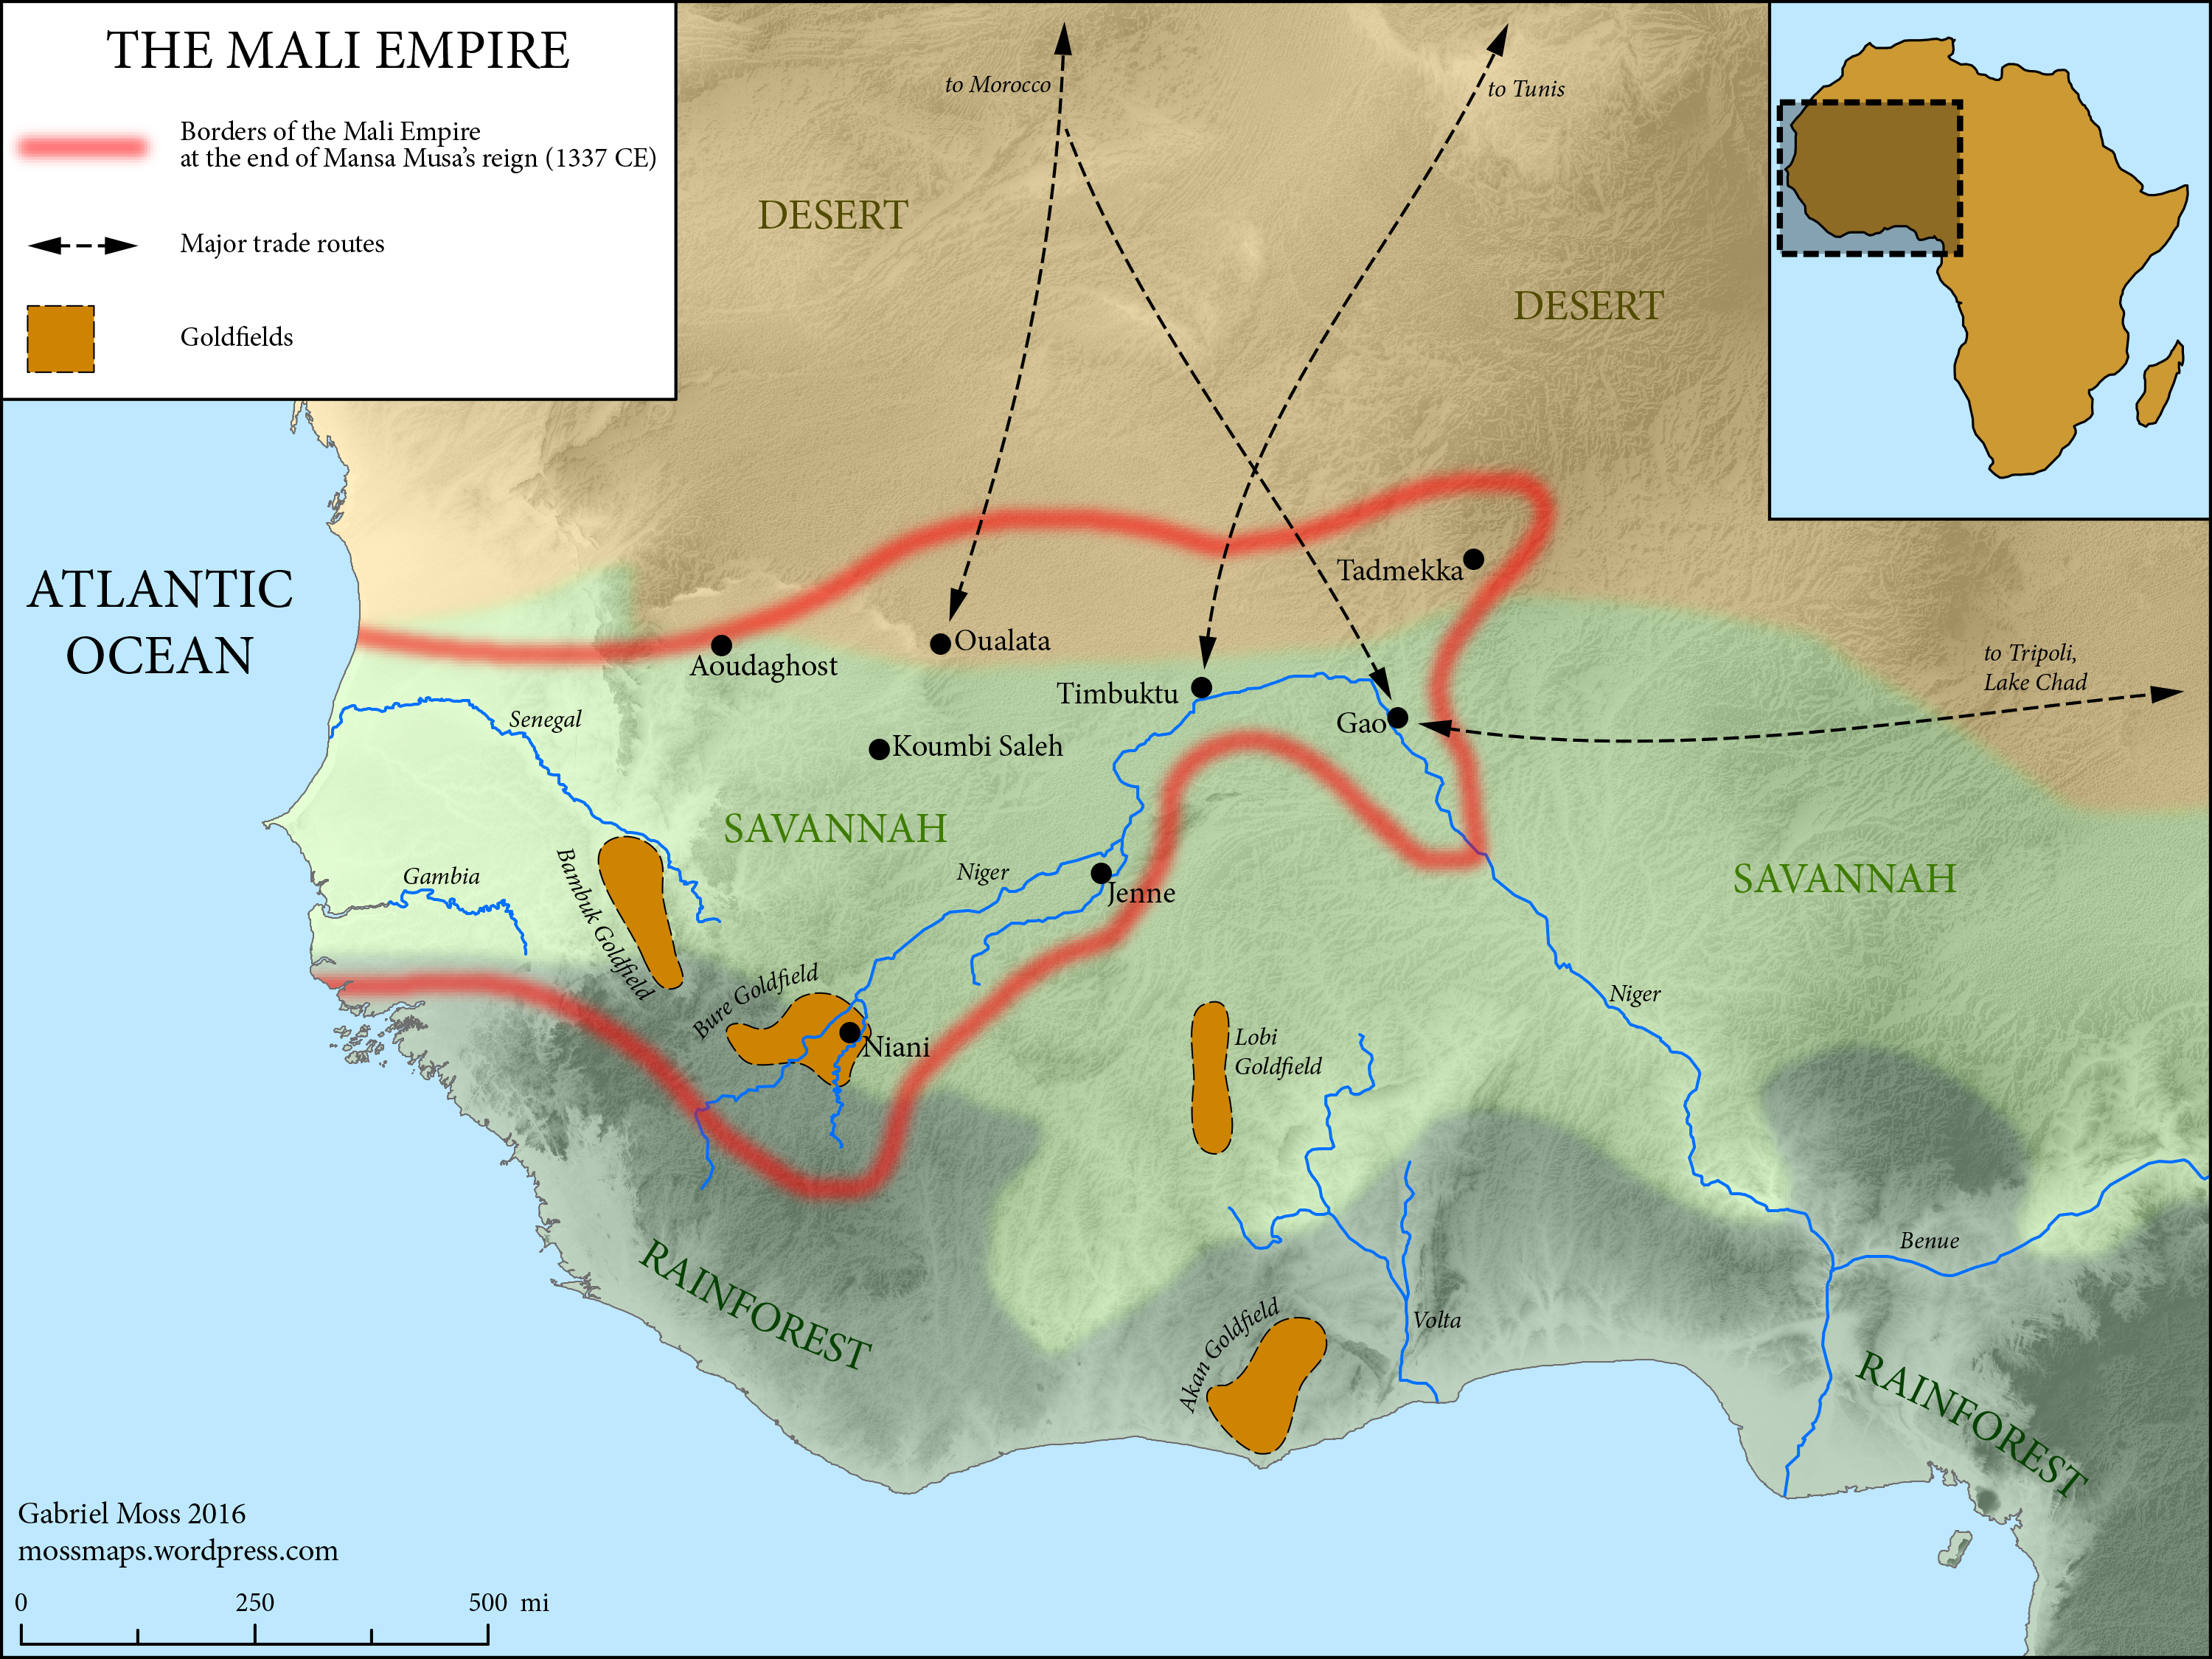 Mali Empire (Of Lions and Falcons)